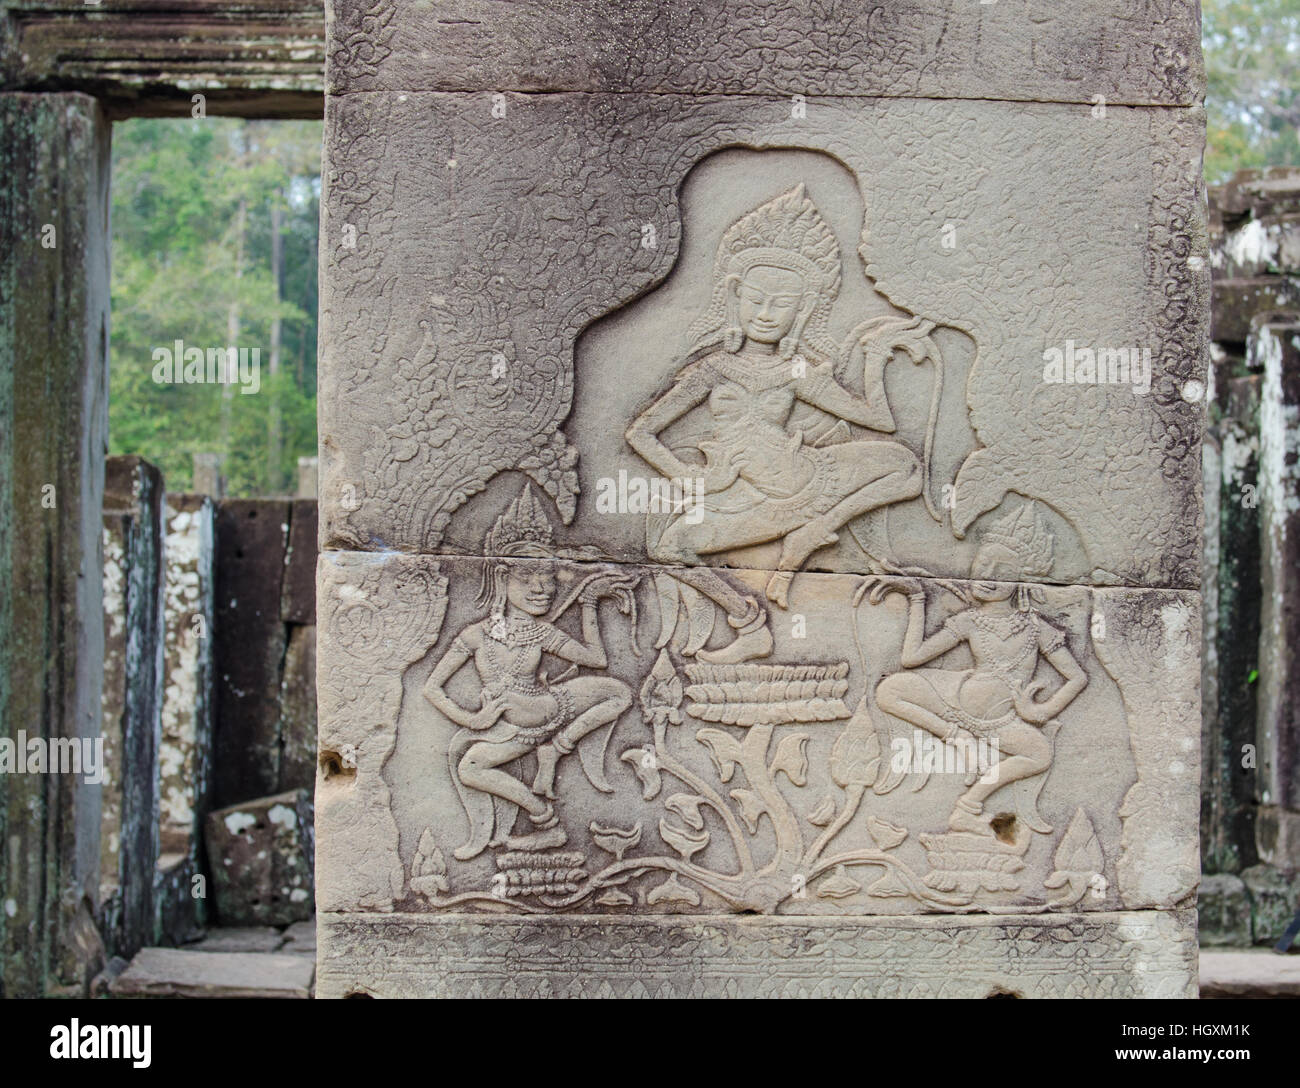 engravings on the walls of the temples of Indochina Cambodia - Stock Image